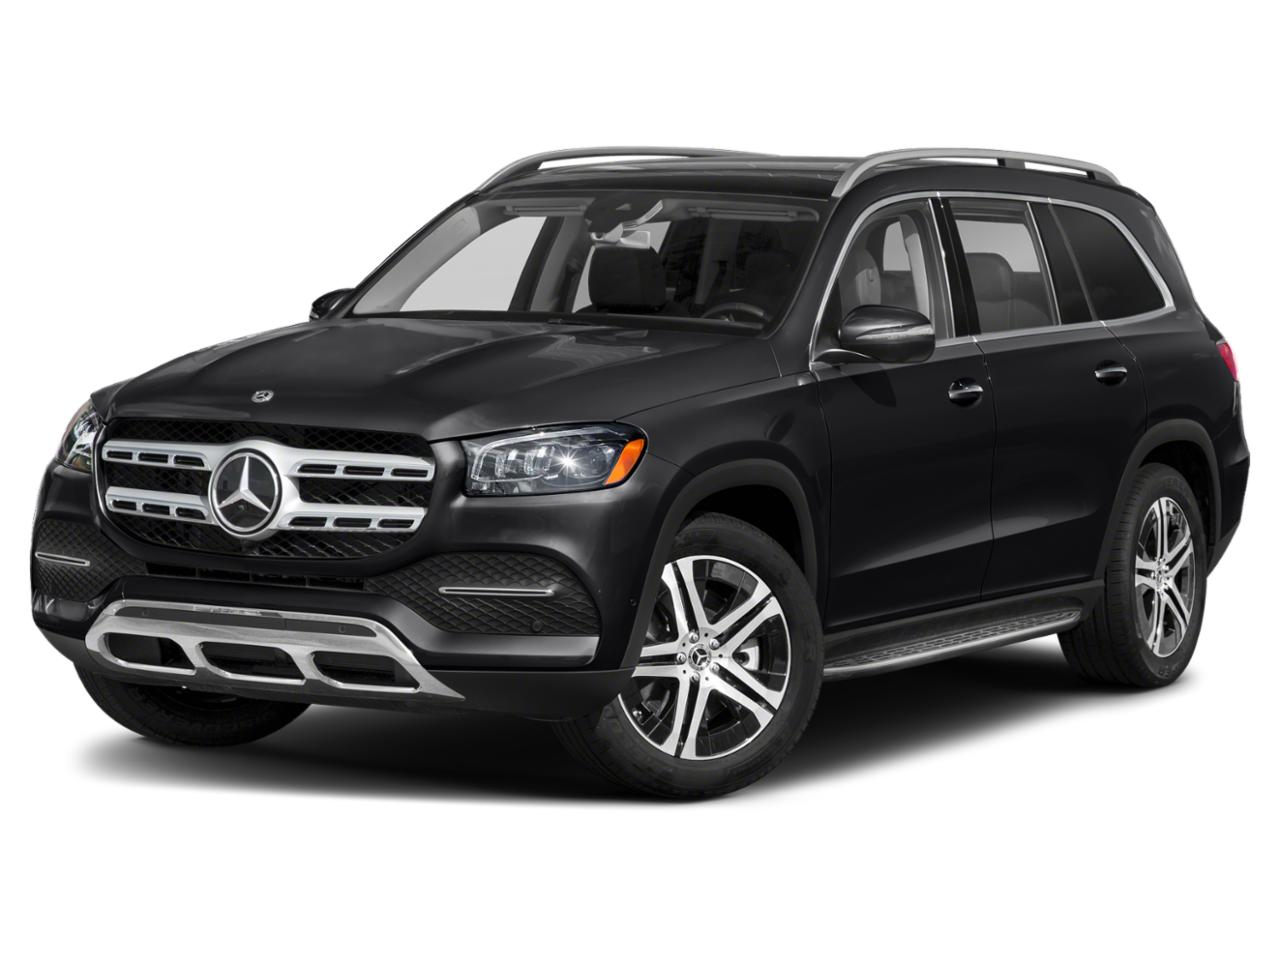 2020 Mercedes-Benz GLS Vehicle Photo in State College, PA 16801